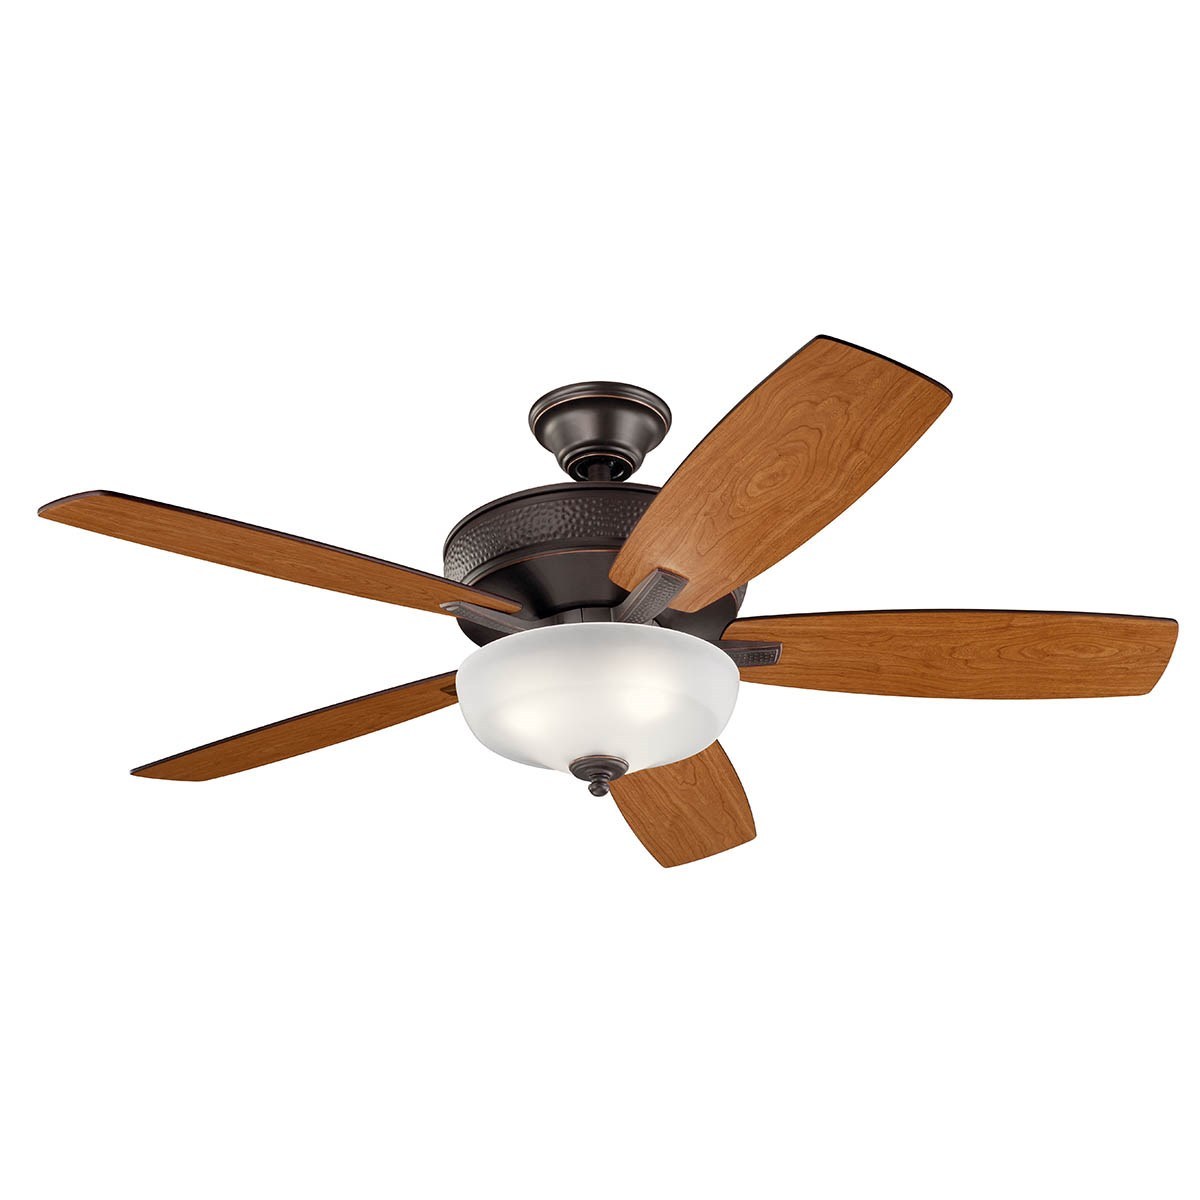 "Monarch II Select LED 52"" Fan Olde Bronze®"